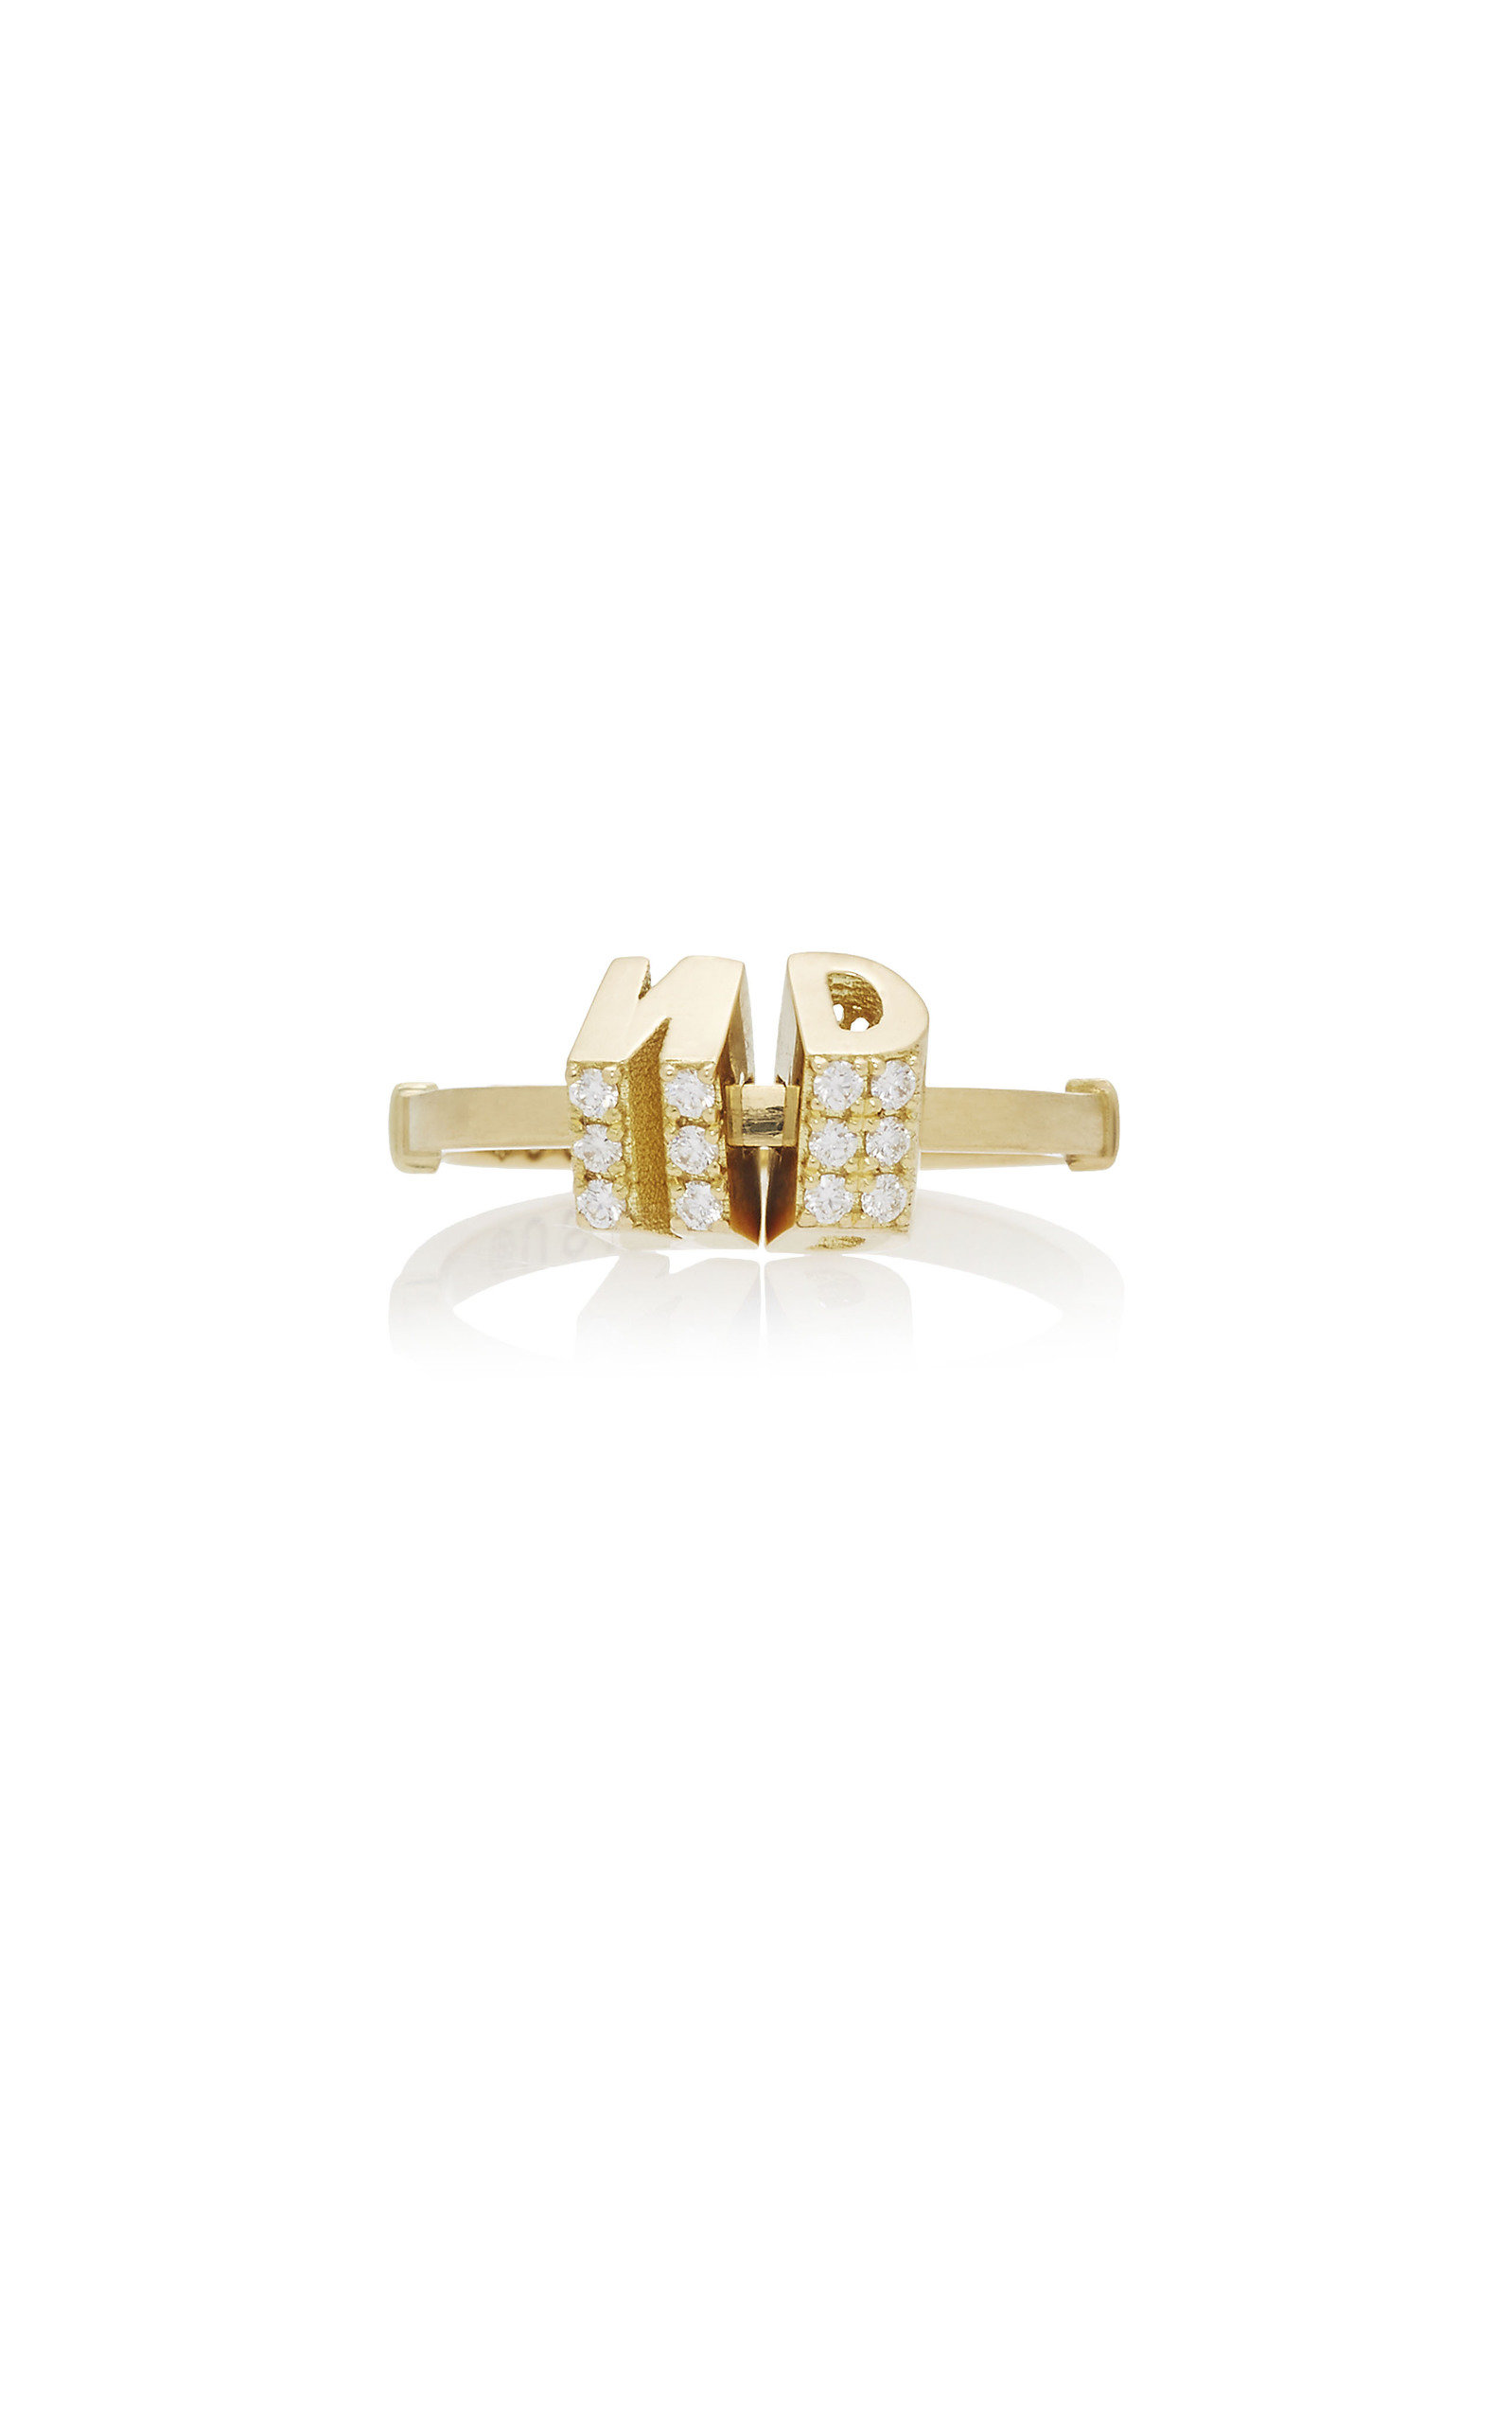 NOUSH JEWELRY BARCODE DOUBLE INITIAL RING